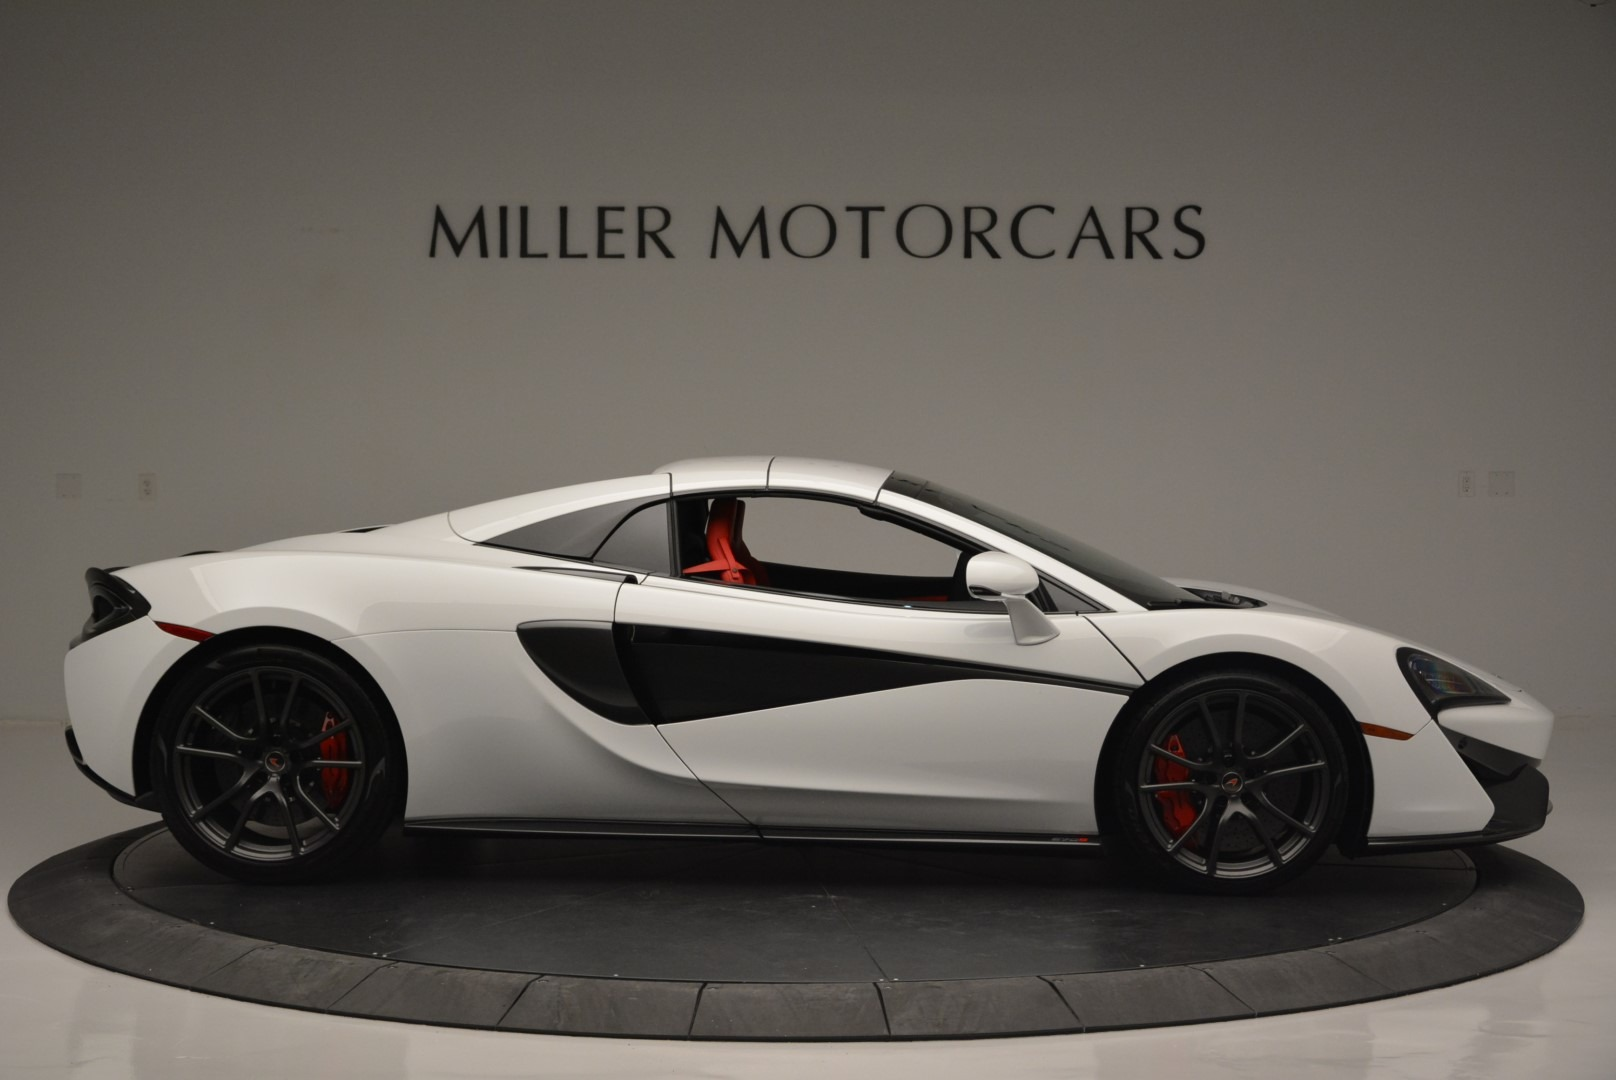 Used 2018 McLaren 570S Spider For Sale In Greenwich, CT. Alfa Romeo of Greenwich, 3149 2341_p19